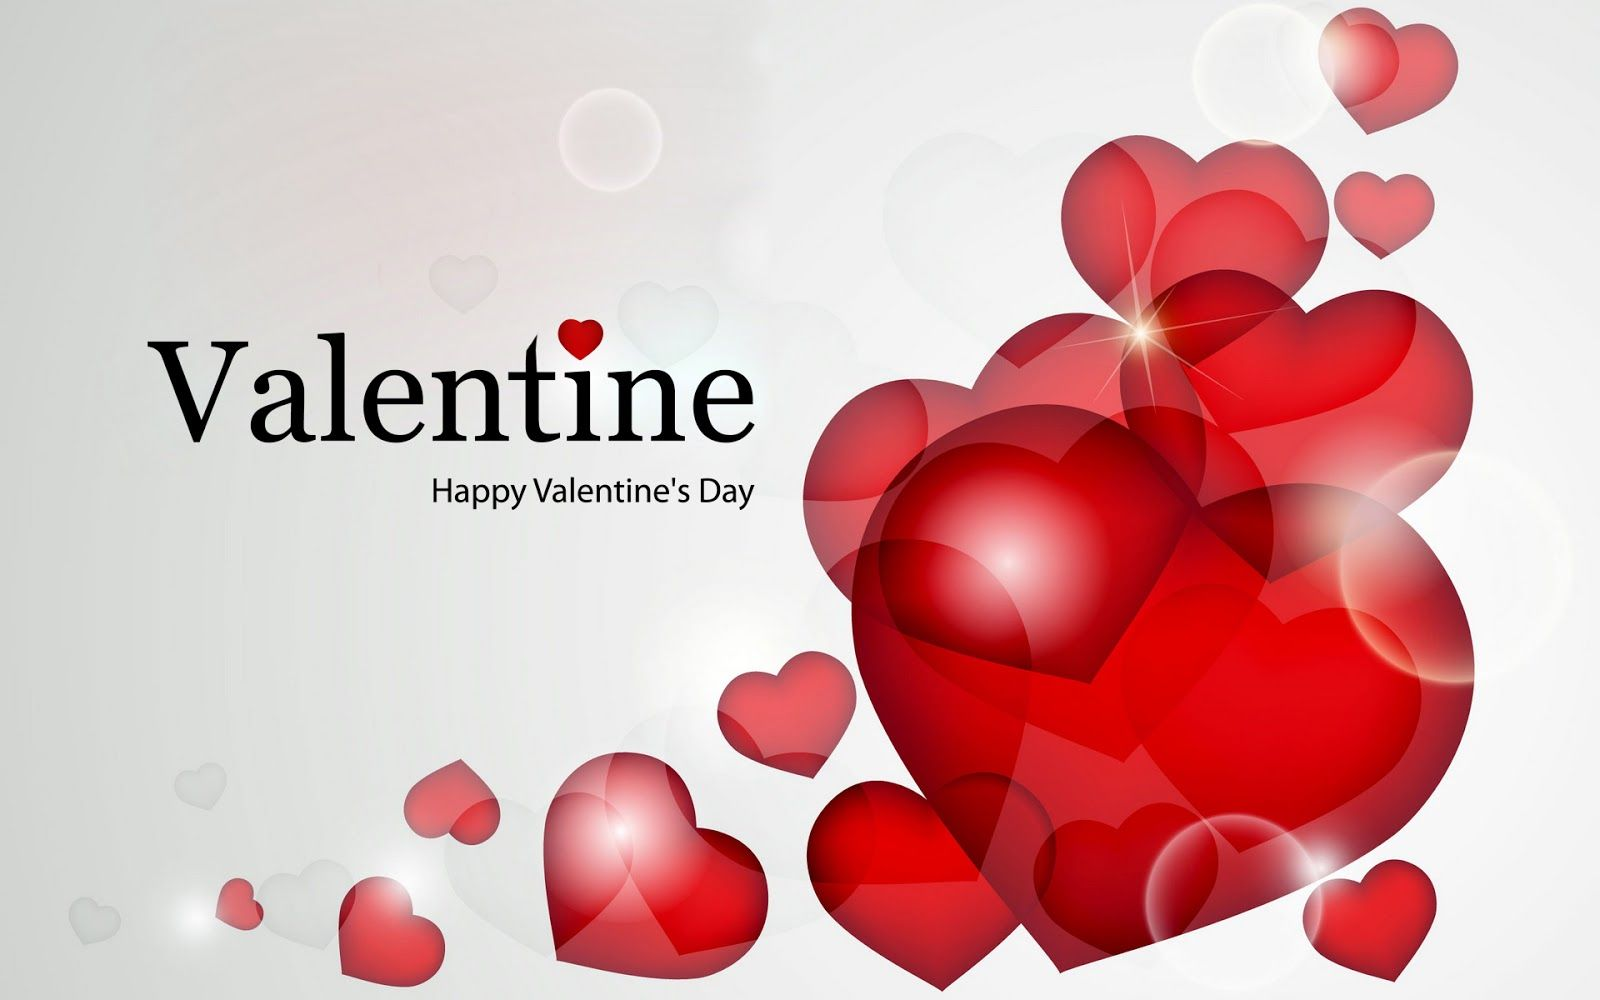 60+ Valentines Day Image 2020 and HD Wallpapers